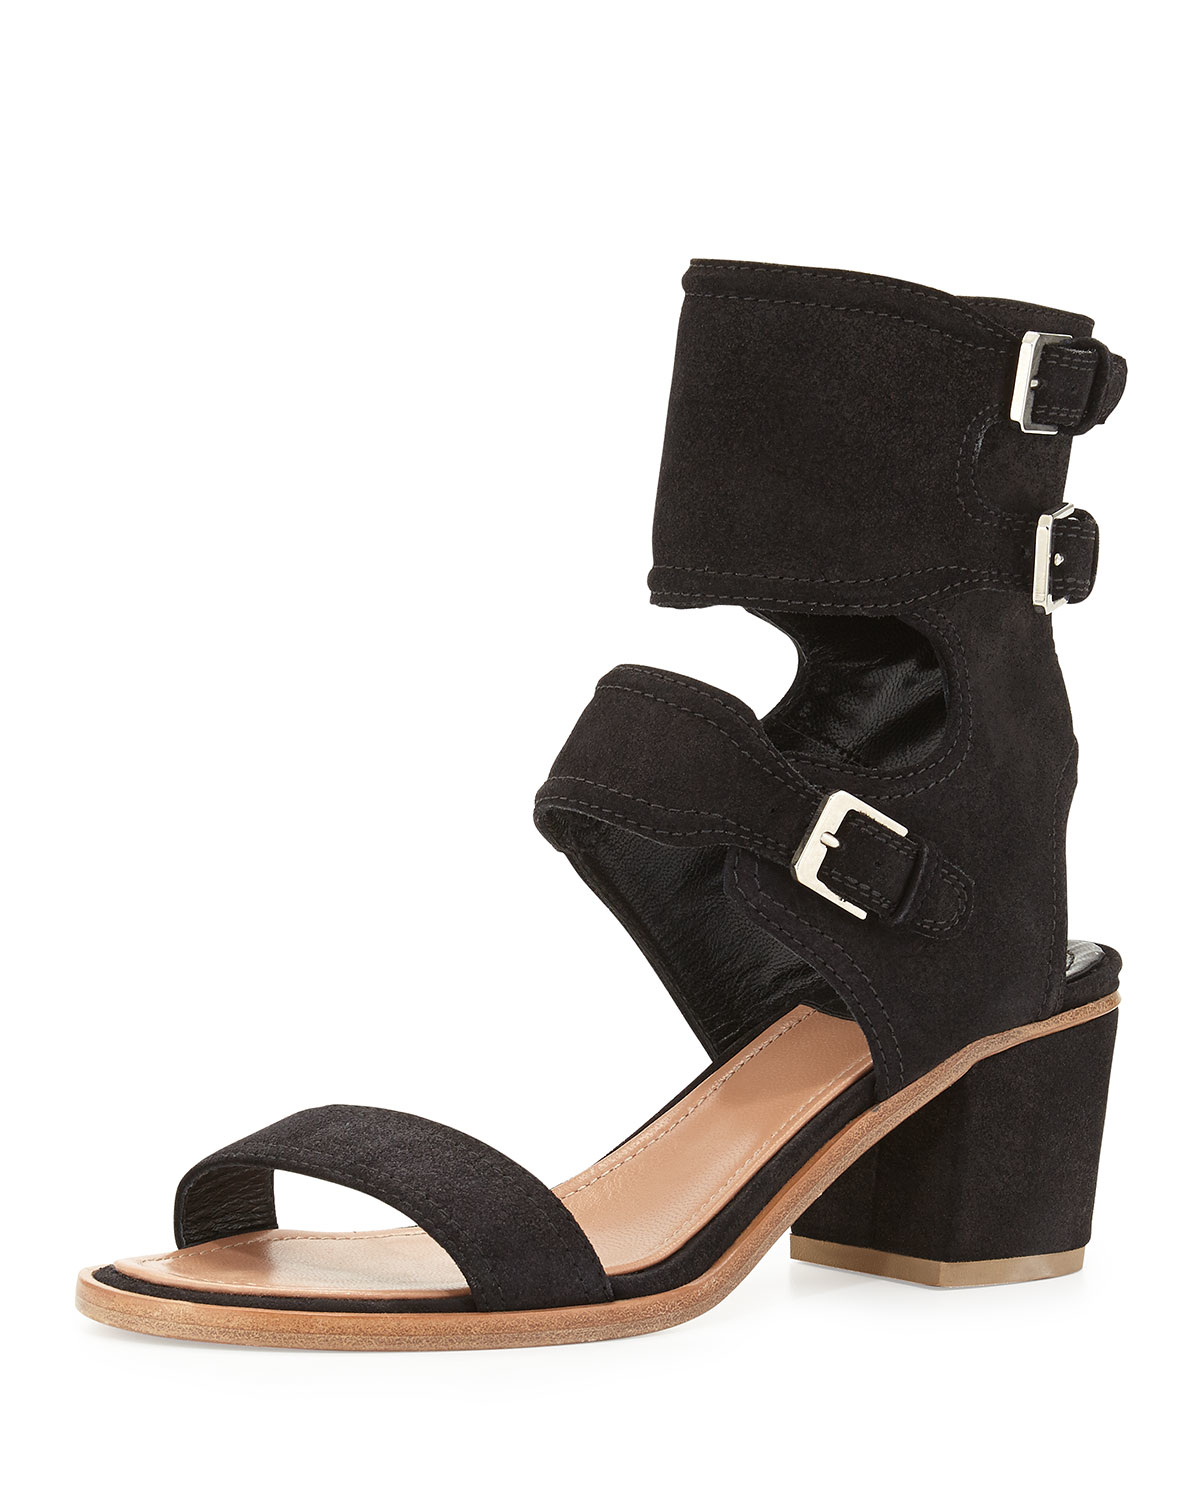 laurence dacade suede ankle cuff sandals in black lyst